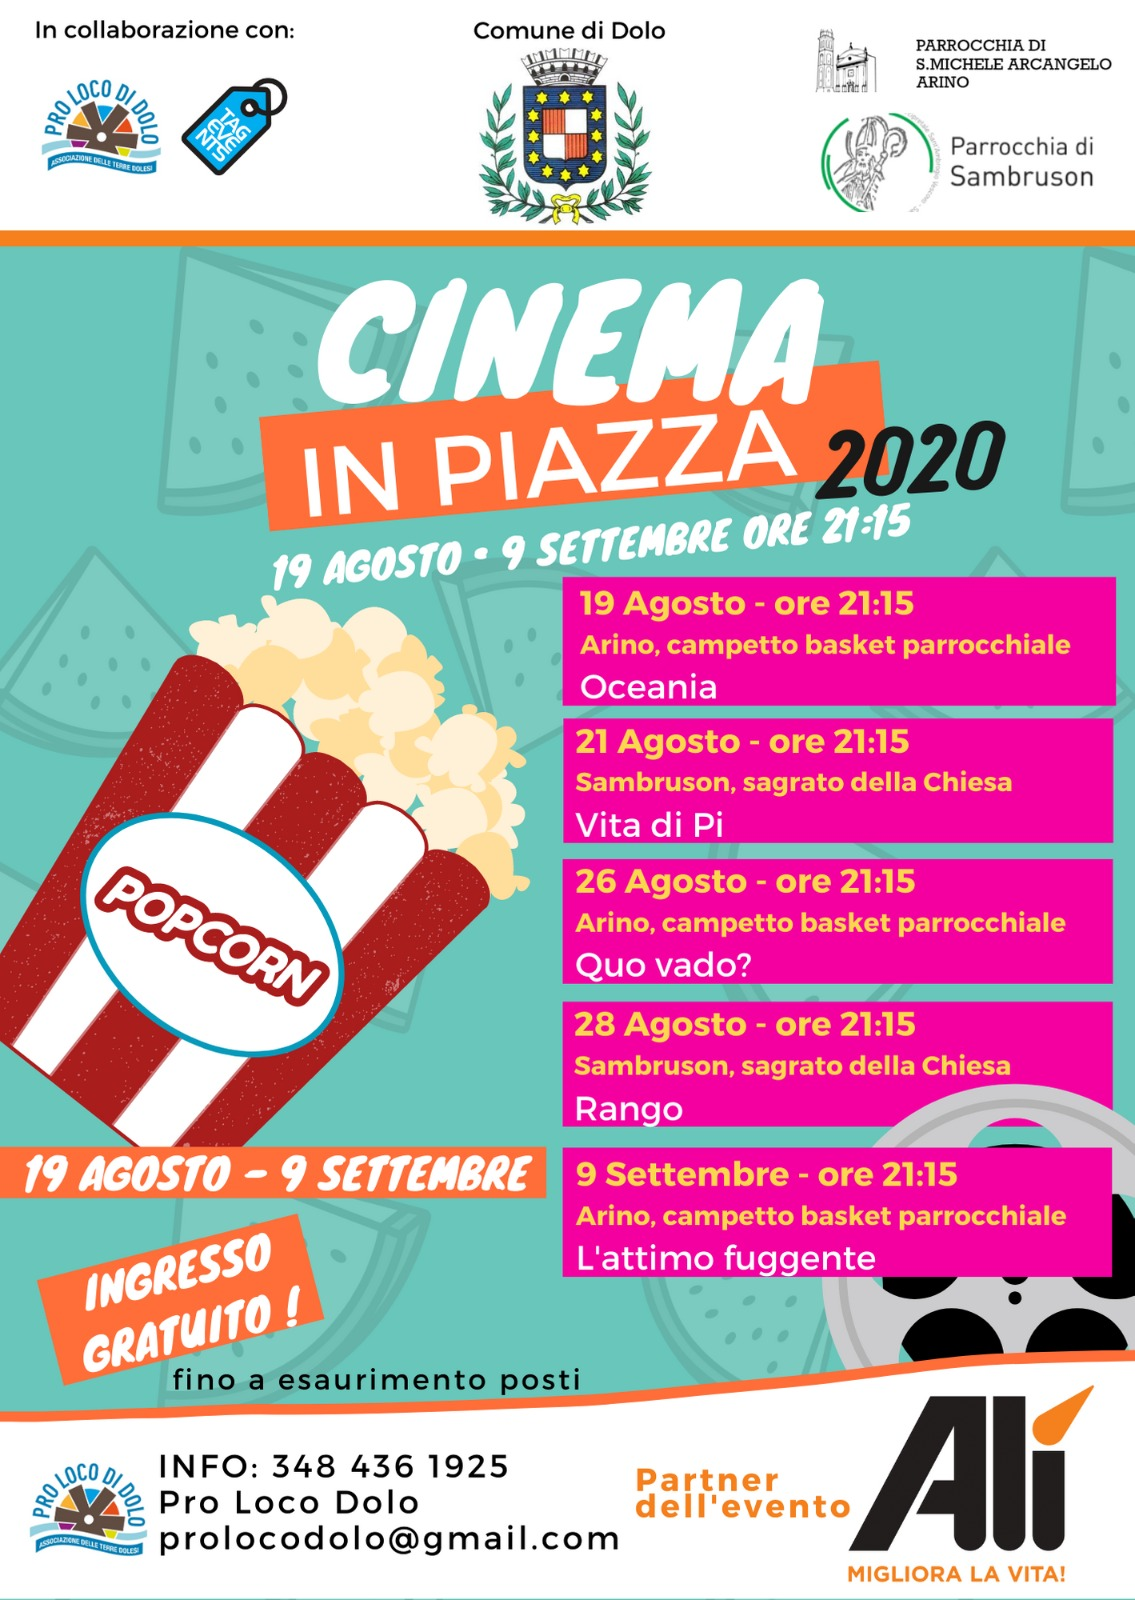 CINEMA IN PIAZZA 2020